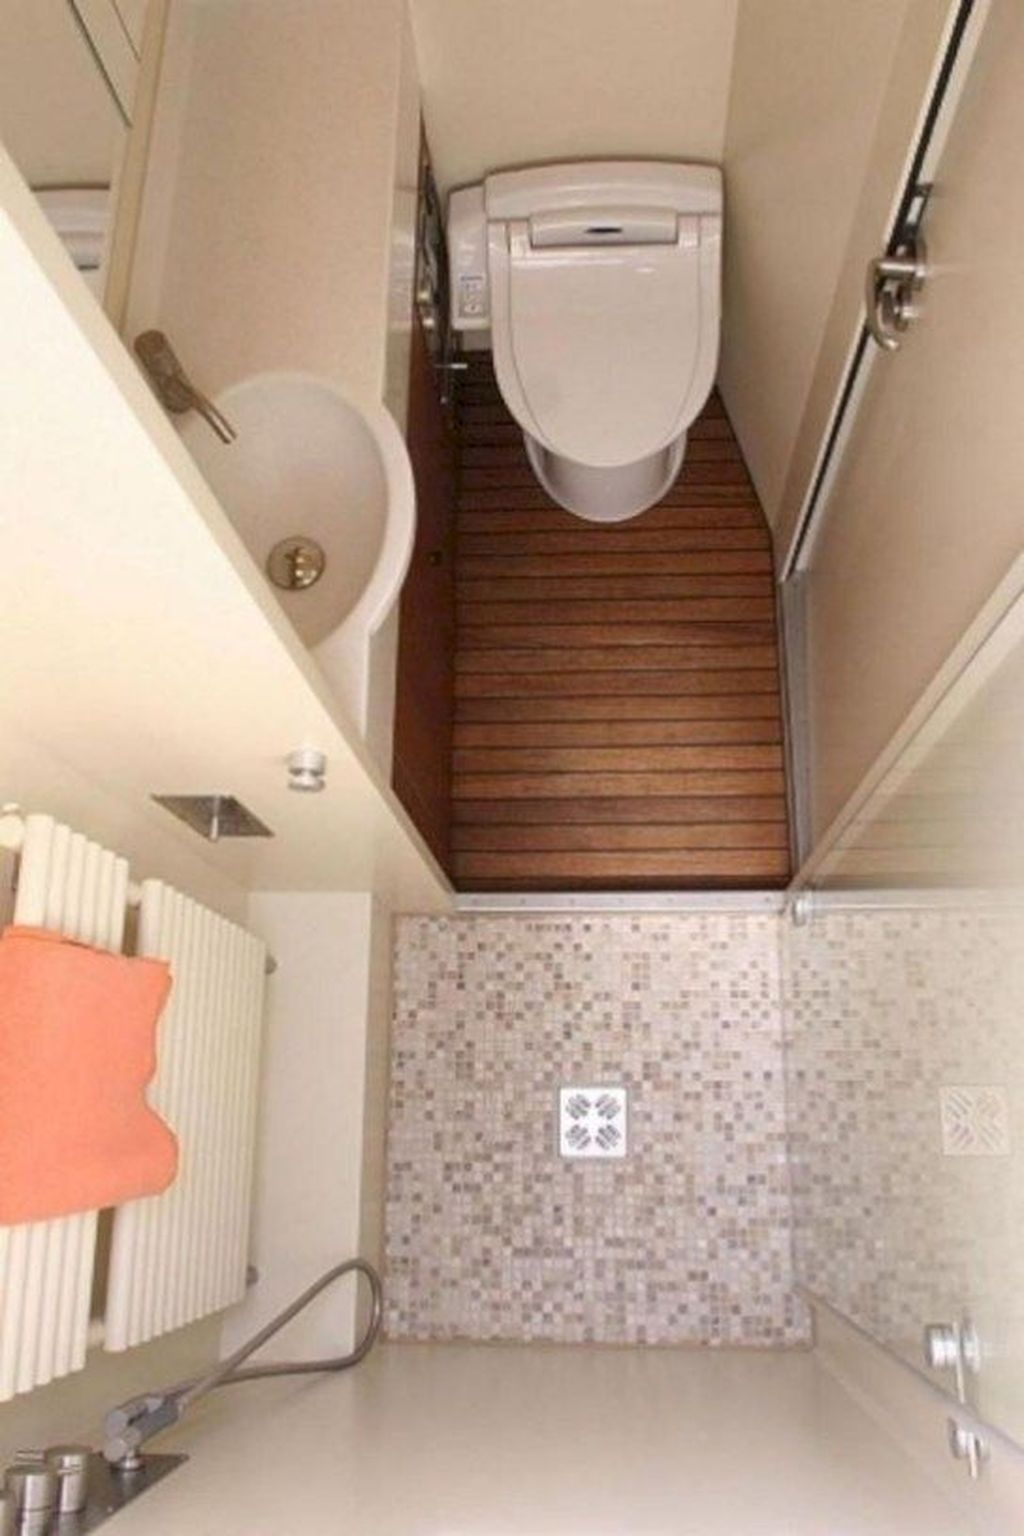 Fascinating Rv Remodel Ideas For Bathroom On A Budget16